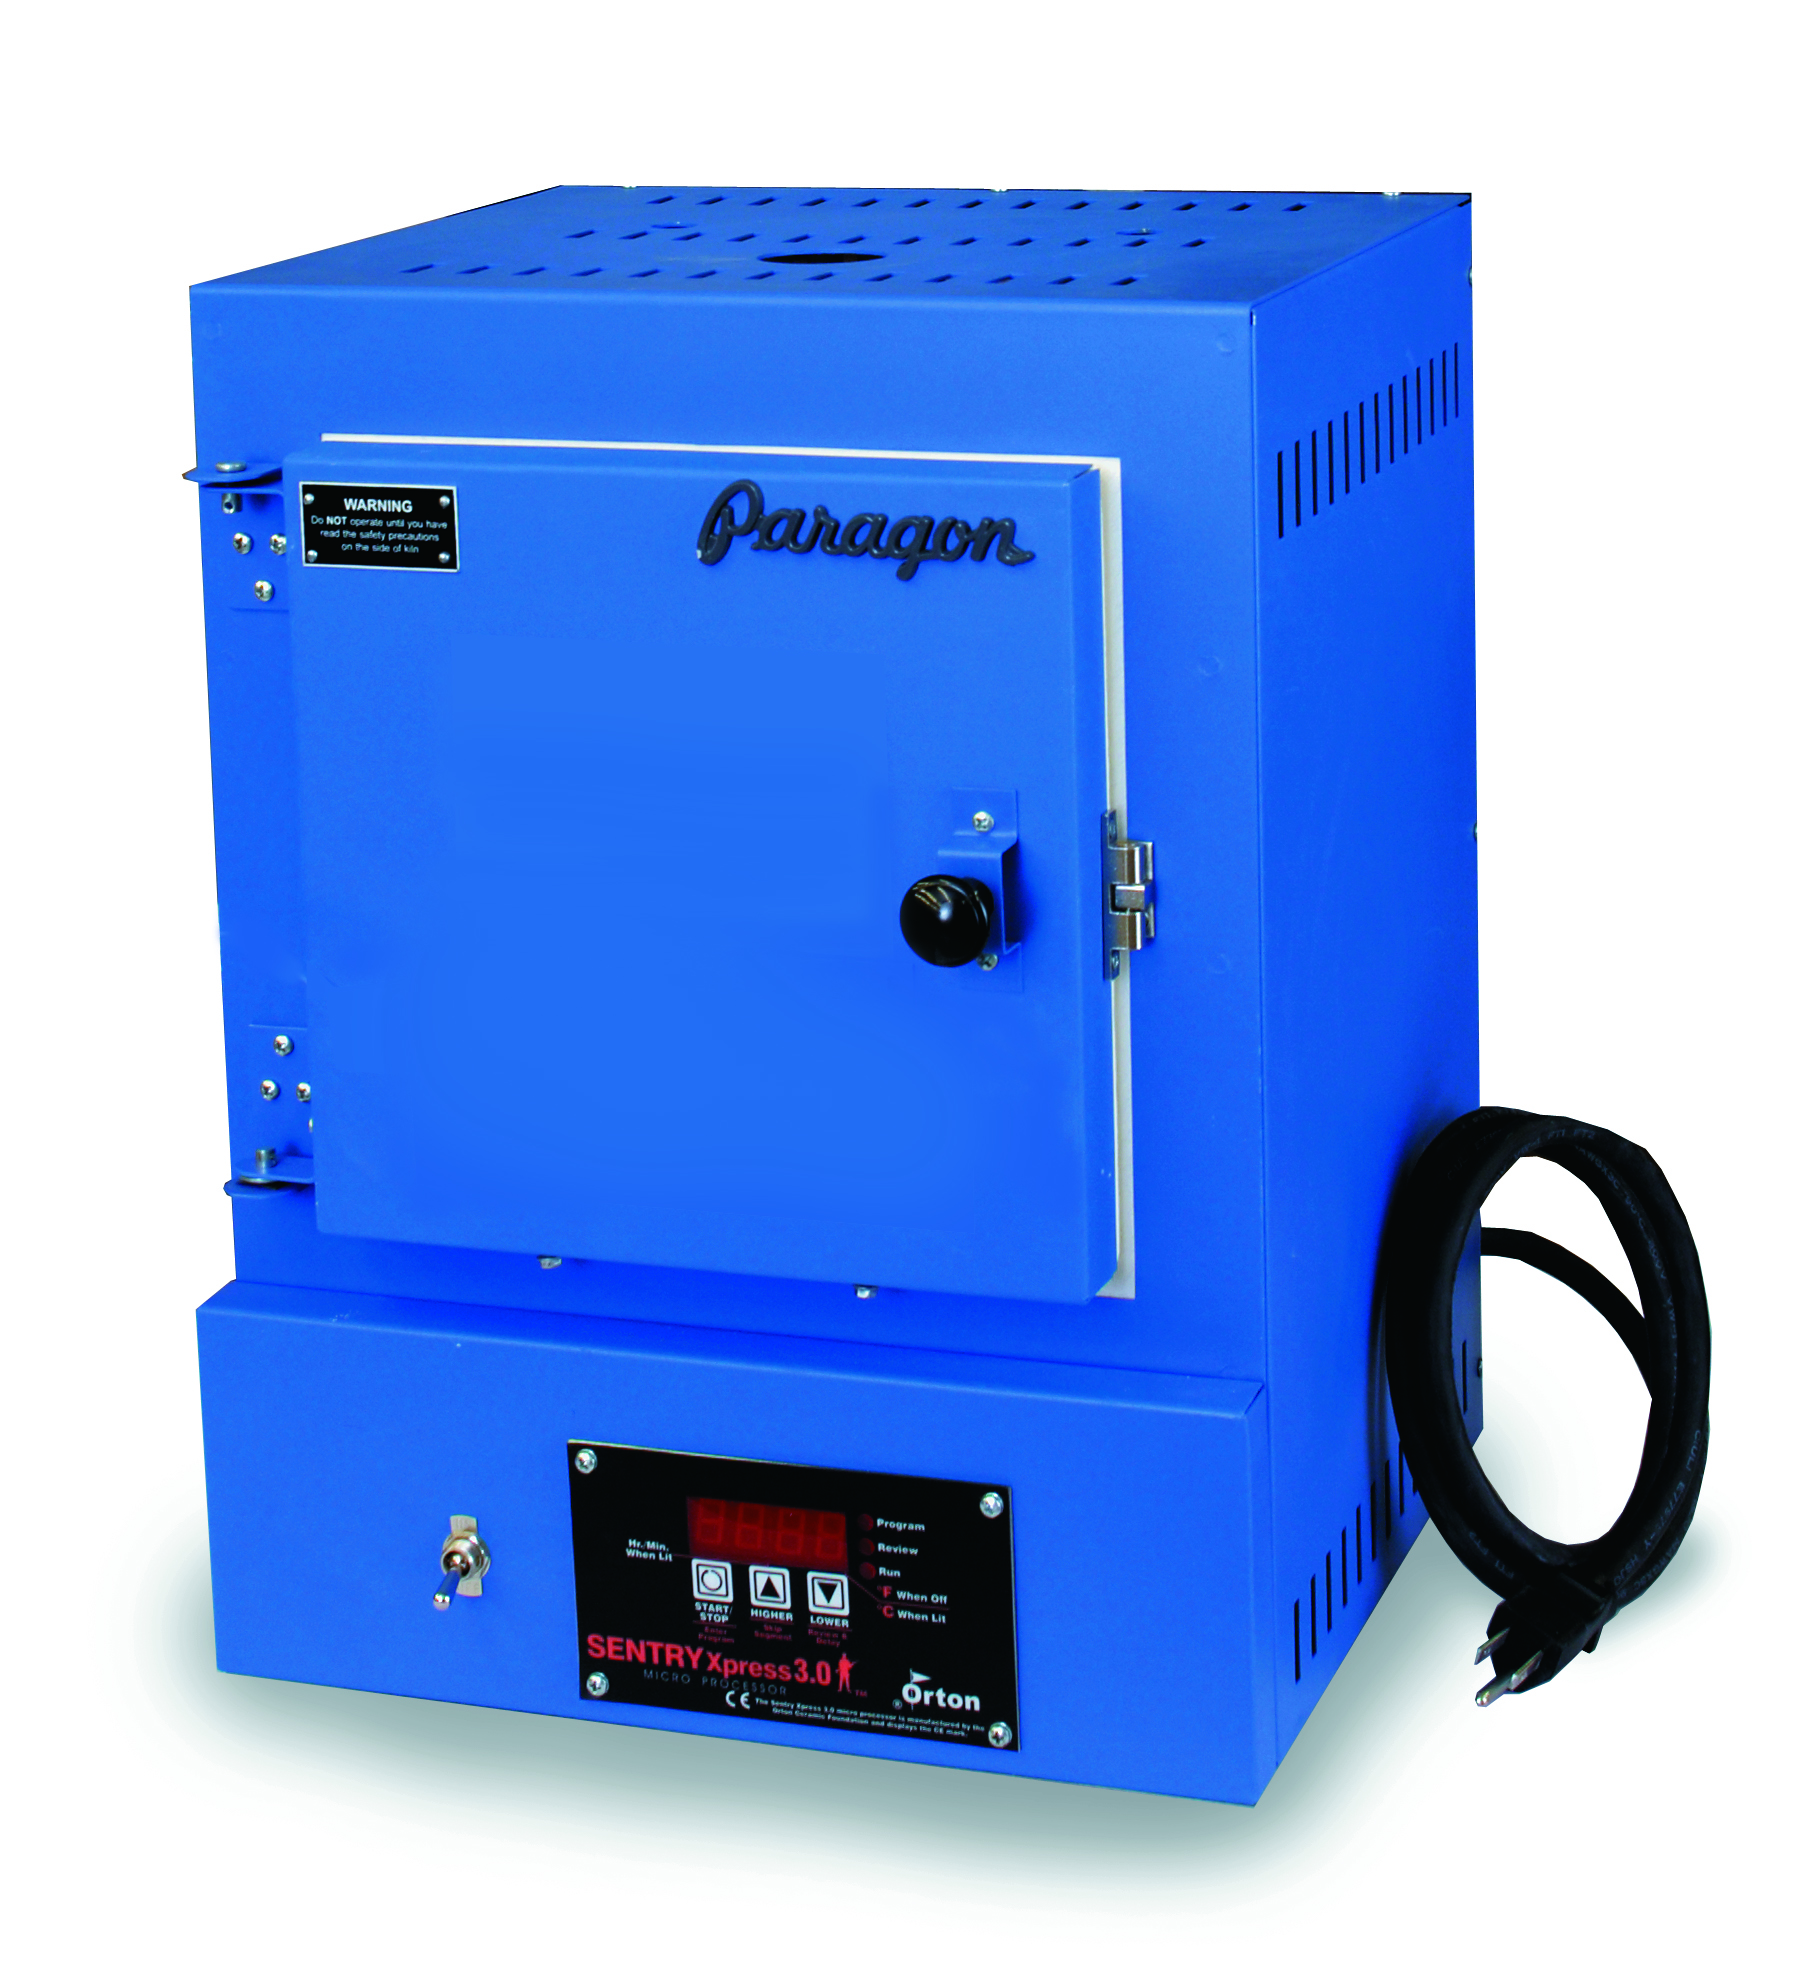 Paragon SC3 Digital Kiln